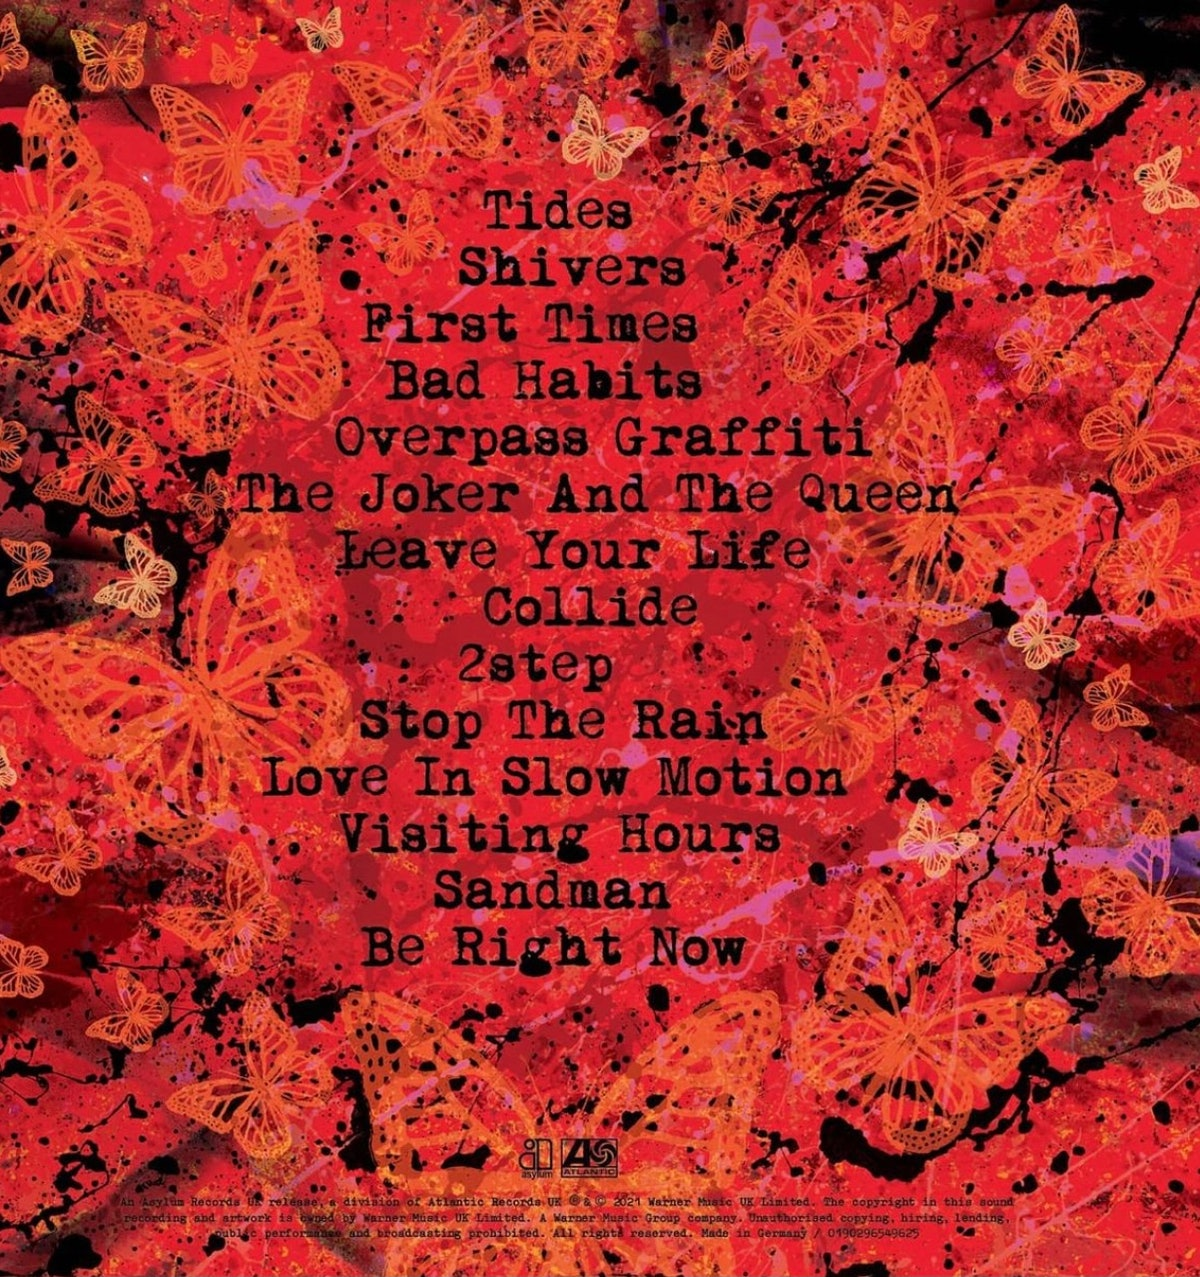 Ed Sheeran announced the tracklist to Equal.